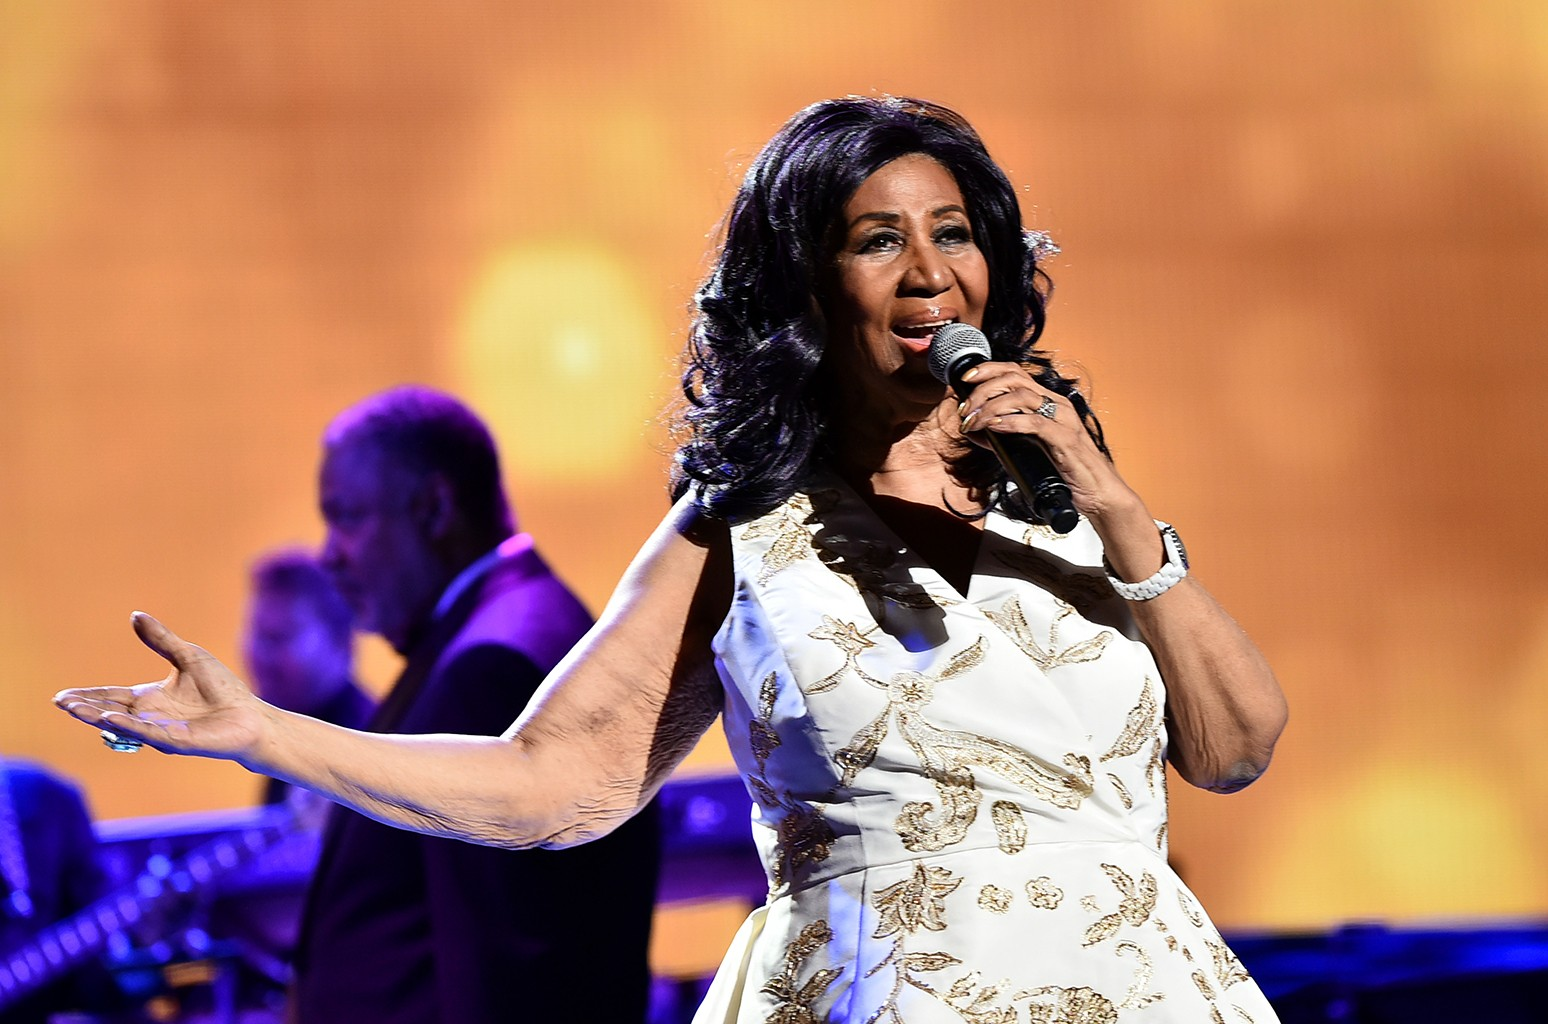 Aretha Franklin performs during the 2017 Tribeca Film Festival at Radio City Music Hall on April 19, 2017 in New York City.